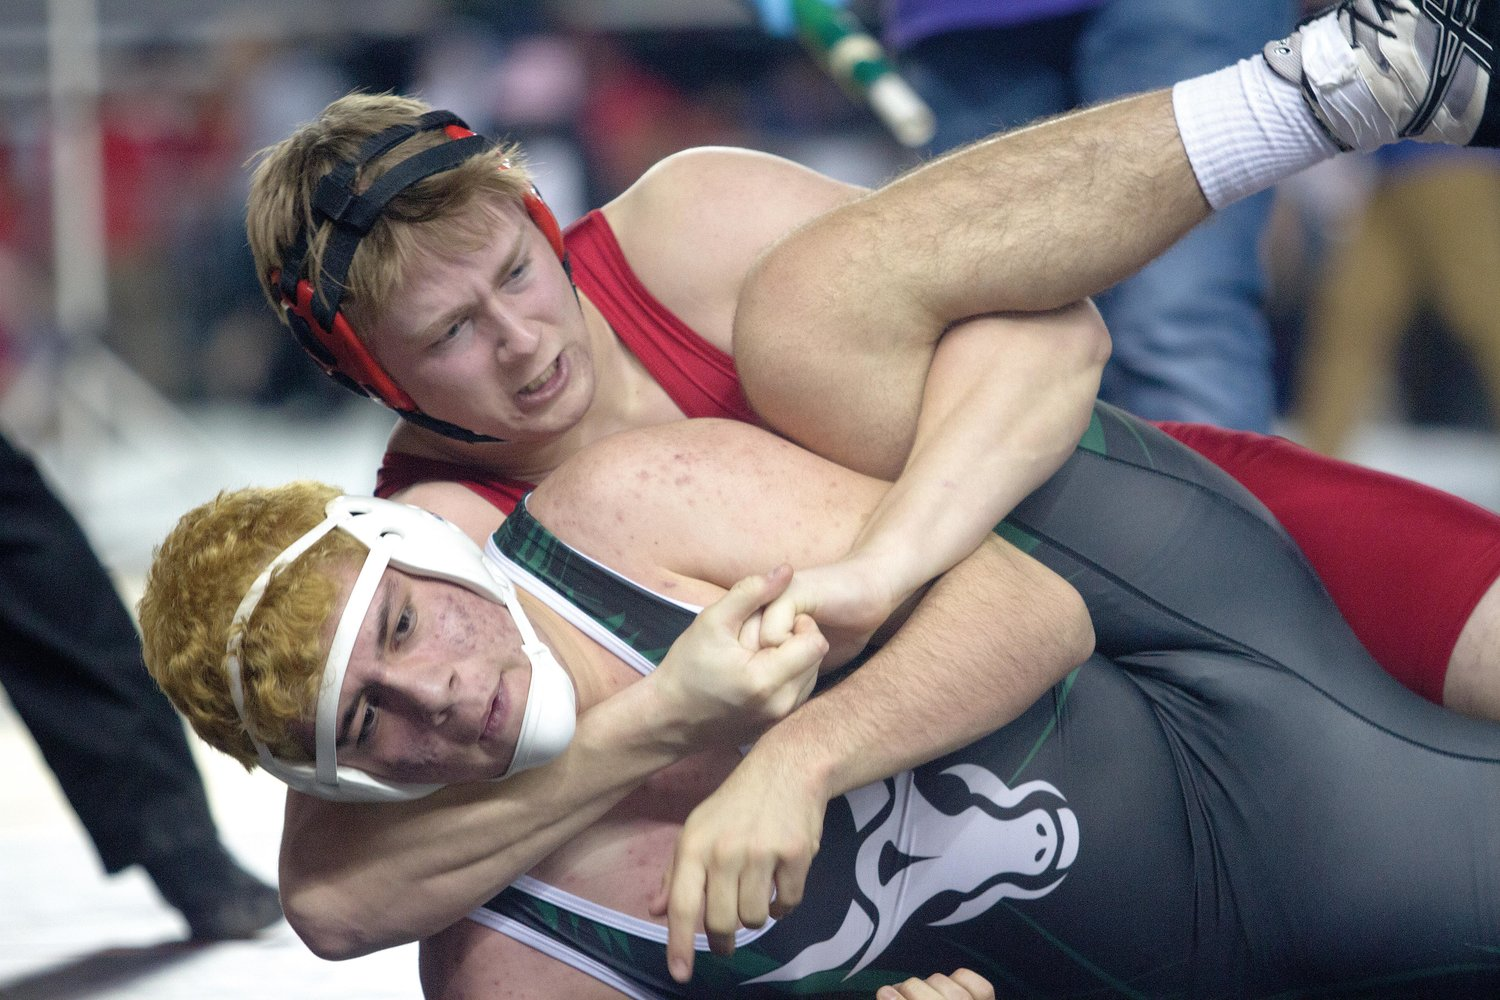 Port Townsend junior Wes Blue, in red, ties up Chelan sophomore Adrian Martinez in their first-round consolation bout. Blue won back-to-back loser-out matches before he ran into Colville senior Ryder Goff, who won six straight to place third.